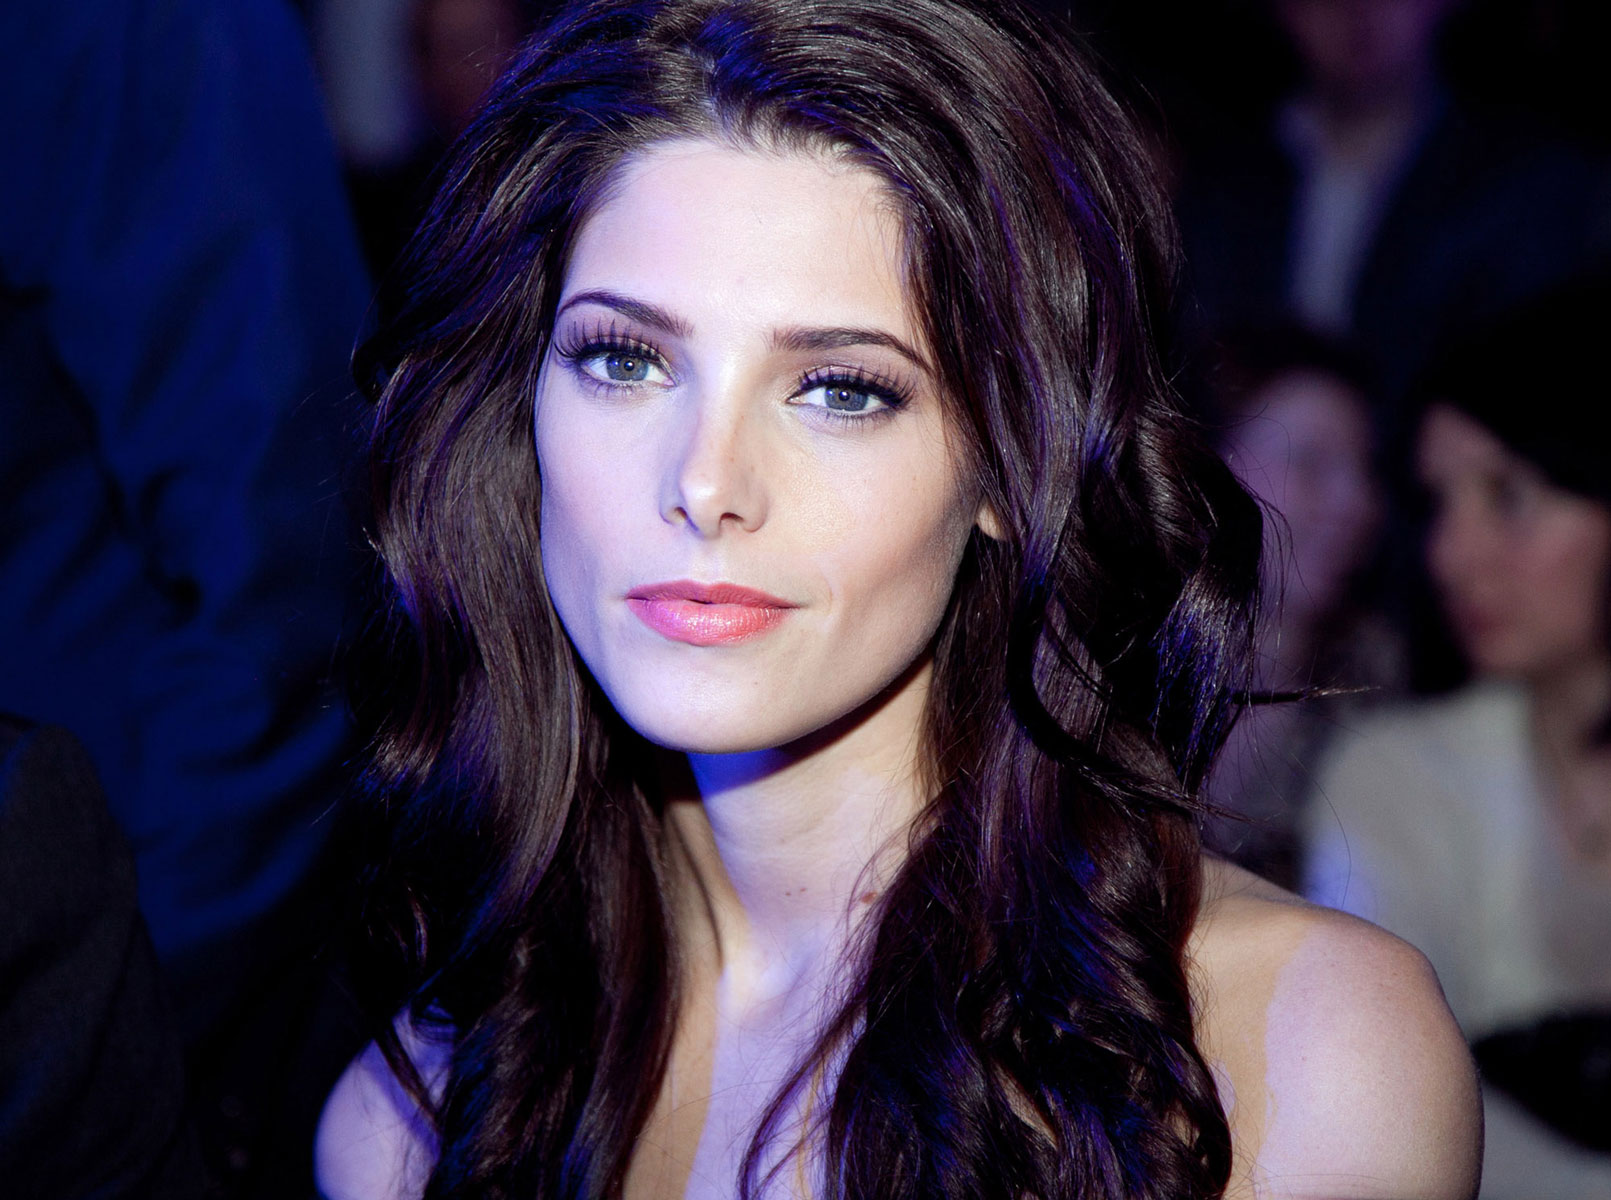 Ashley Greene full hd wallpapers